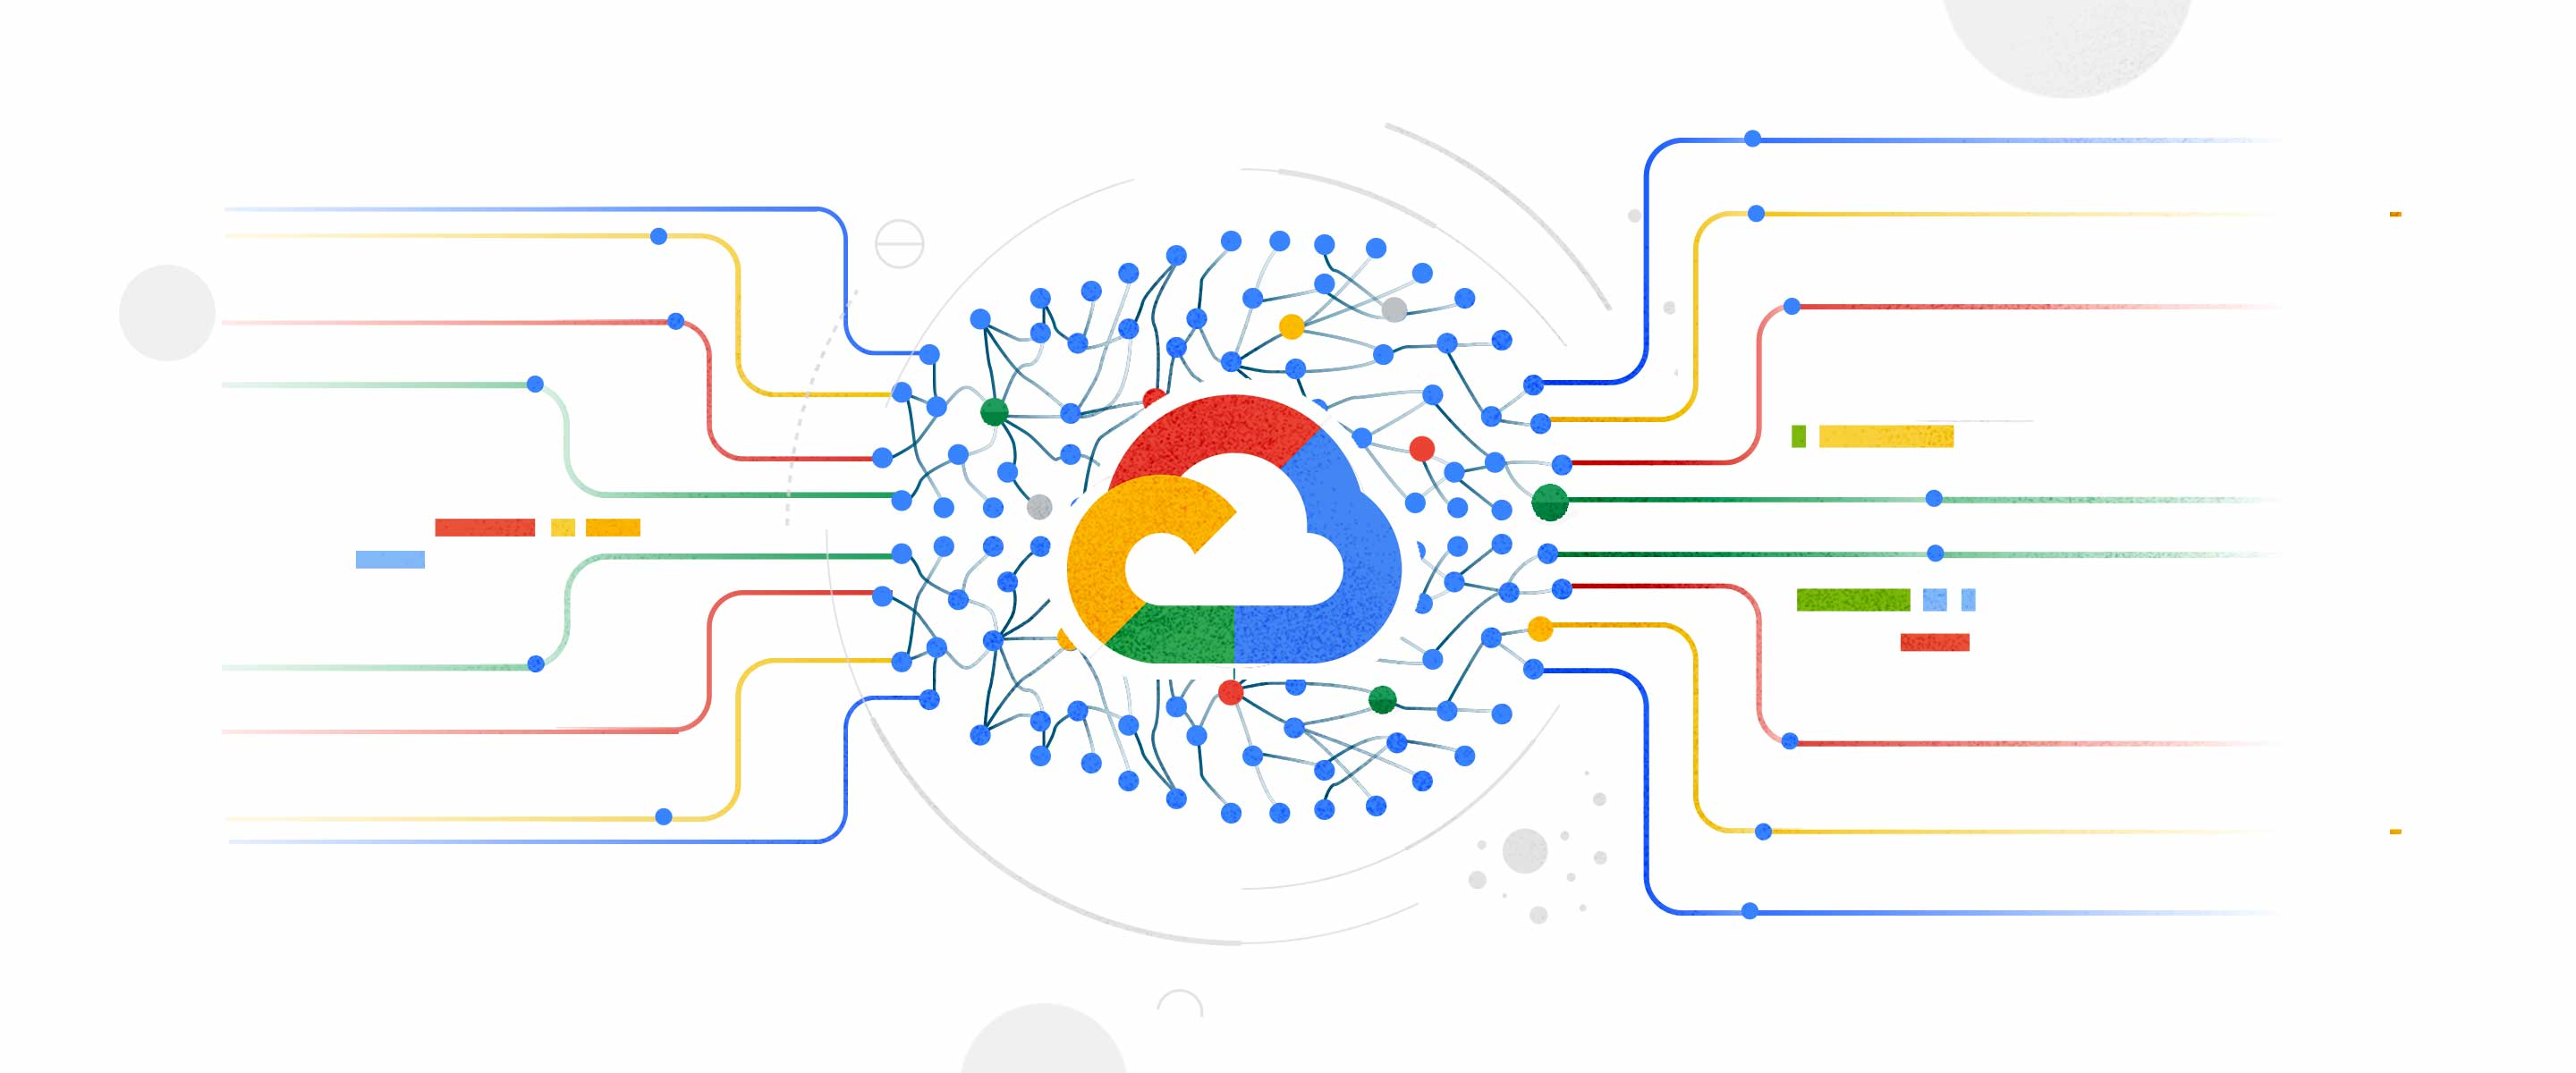 Build a chatbot resume on Google Cloud